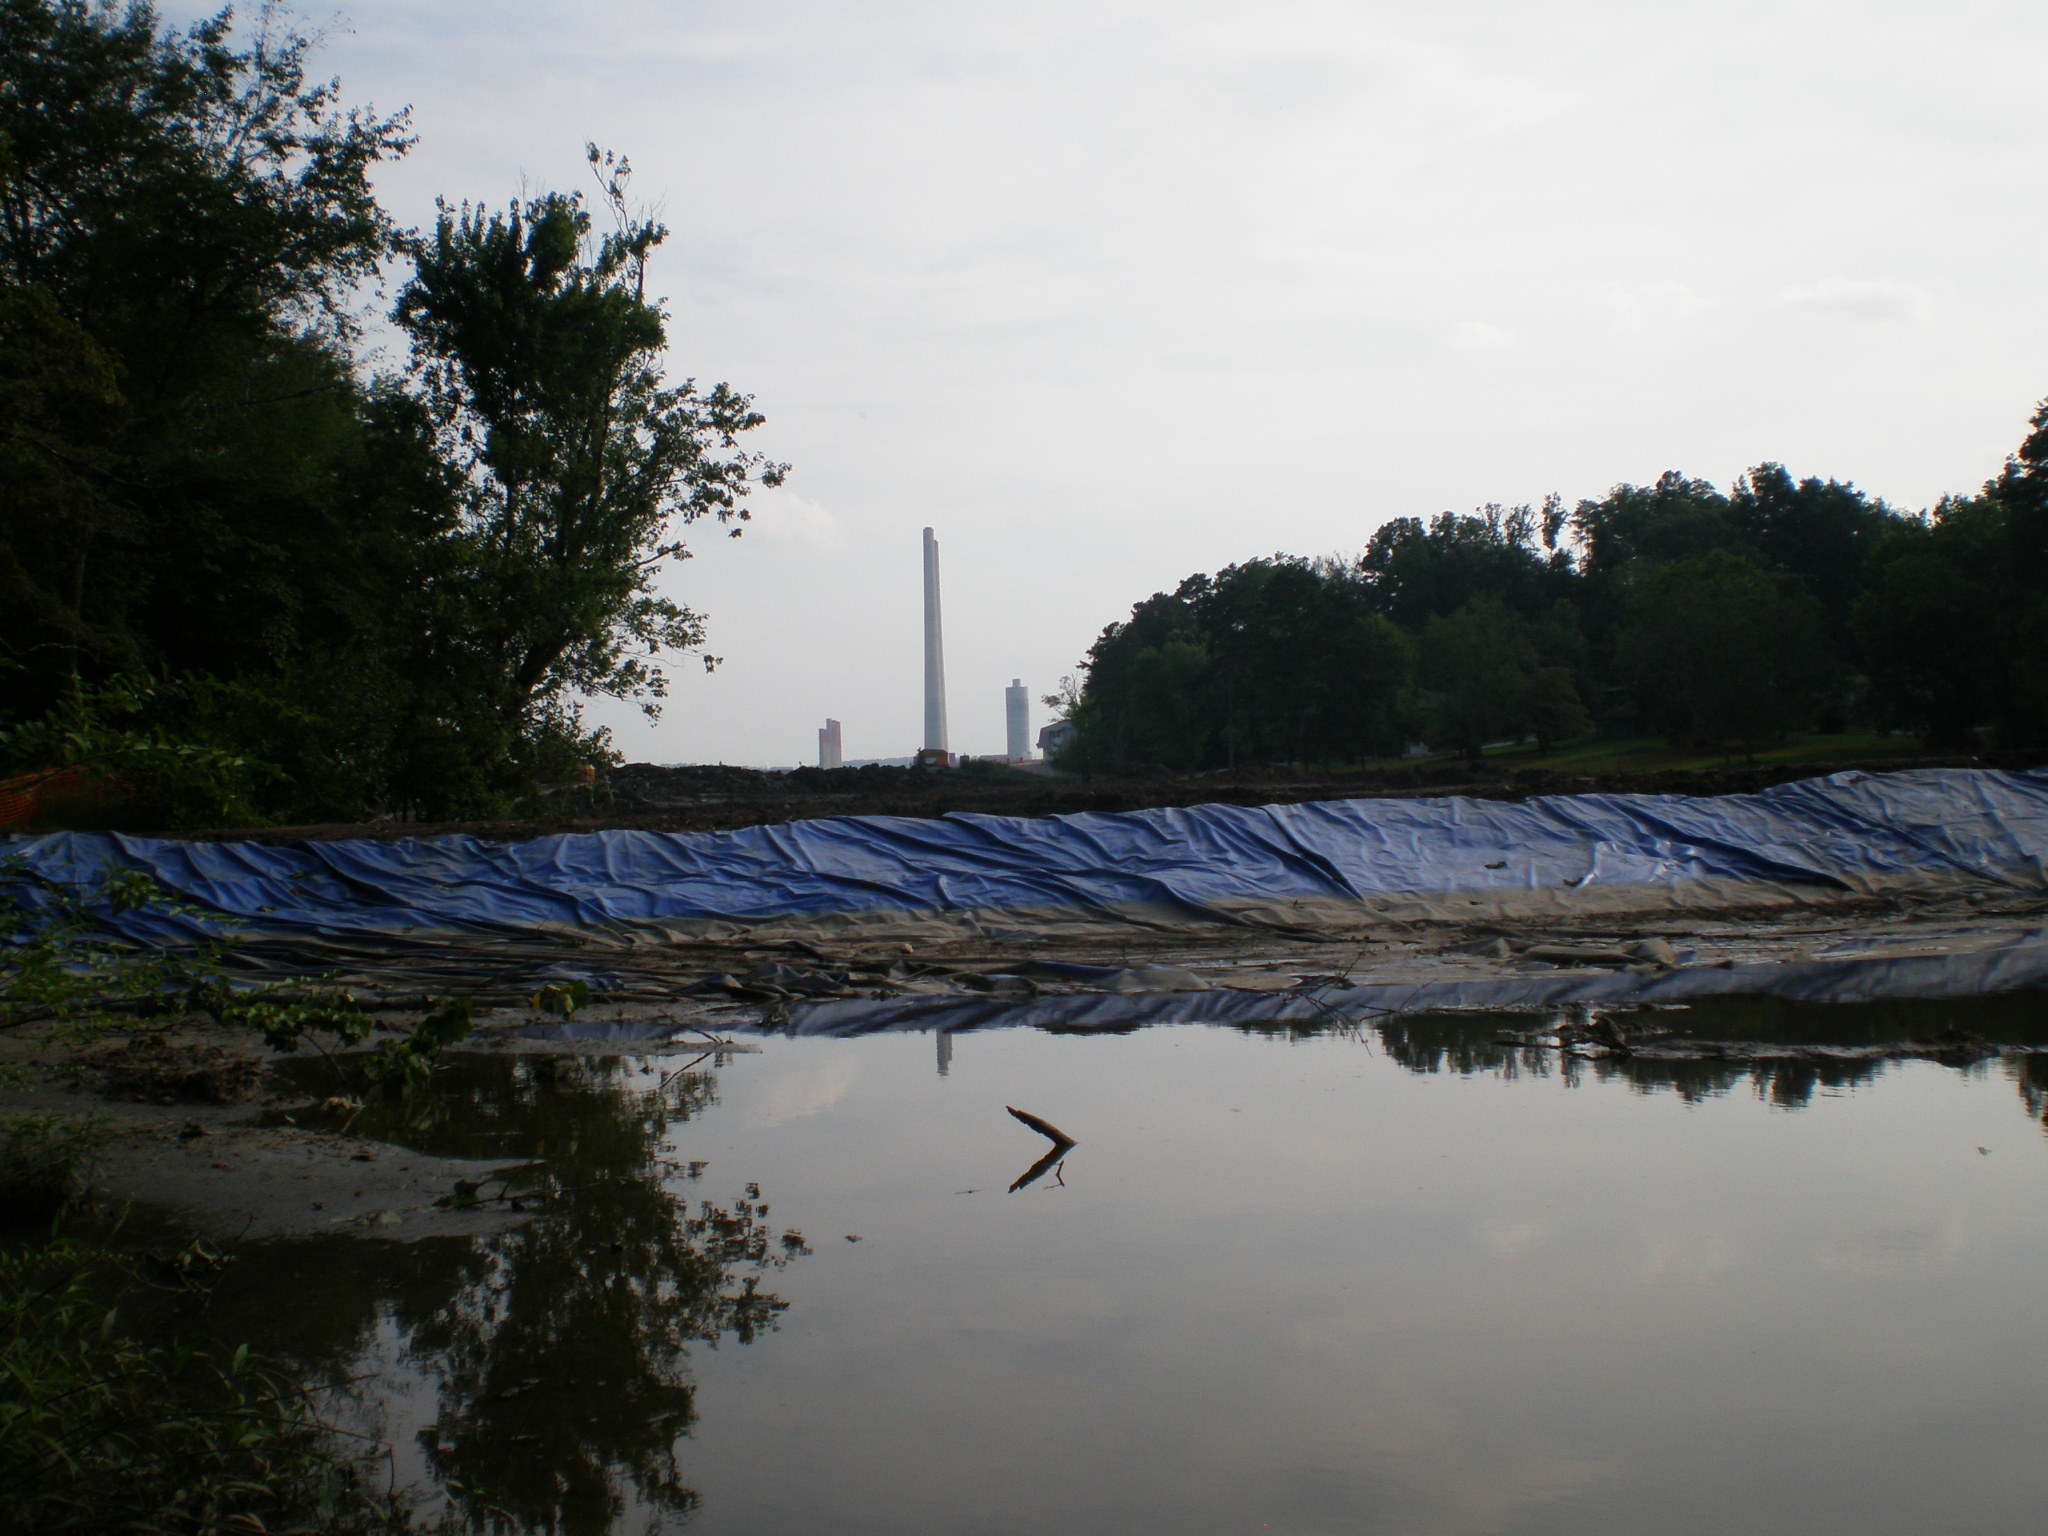 The TVA Kingston Fossil Plant in Roane County, Tenn. was the site of a 2008 spill of more than 1 billion gallons of coal ash slurry.